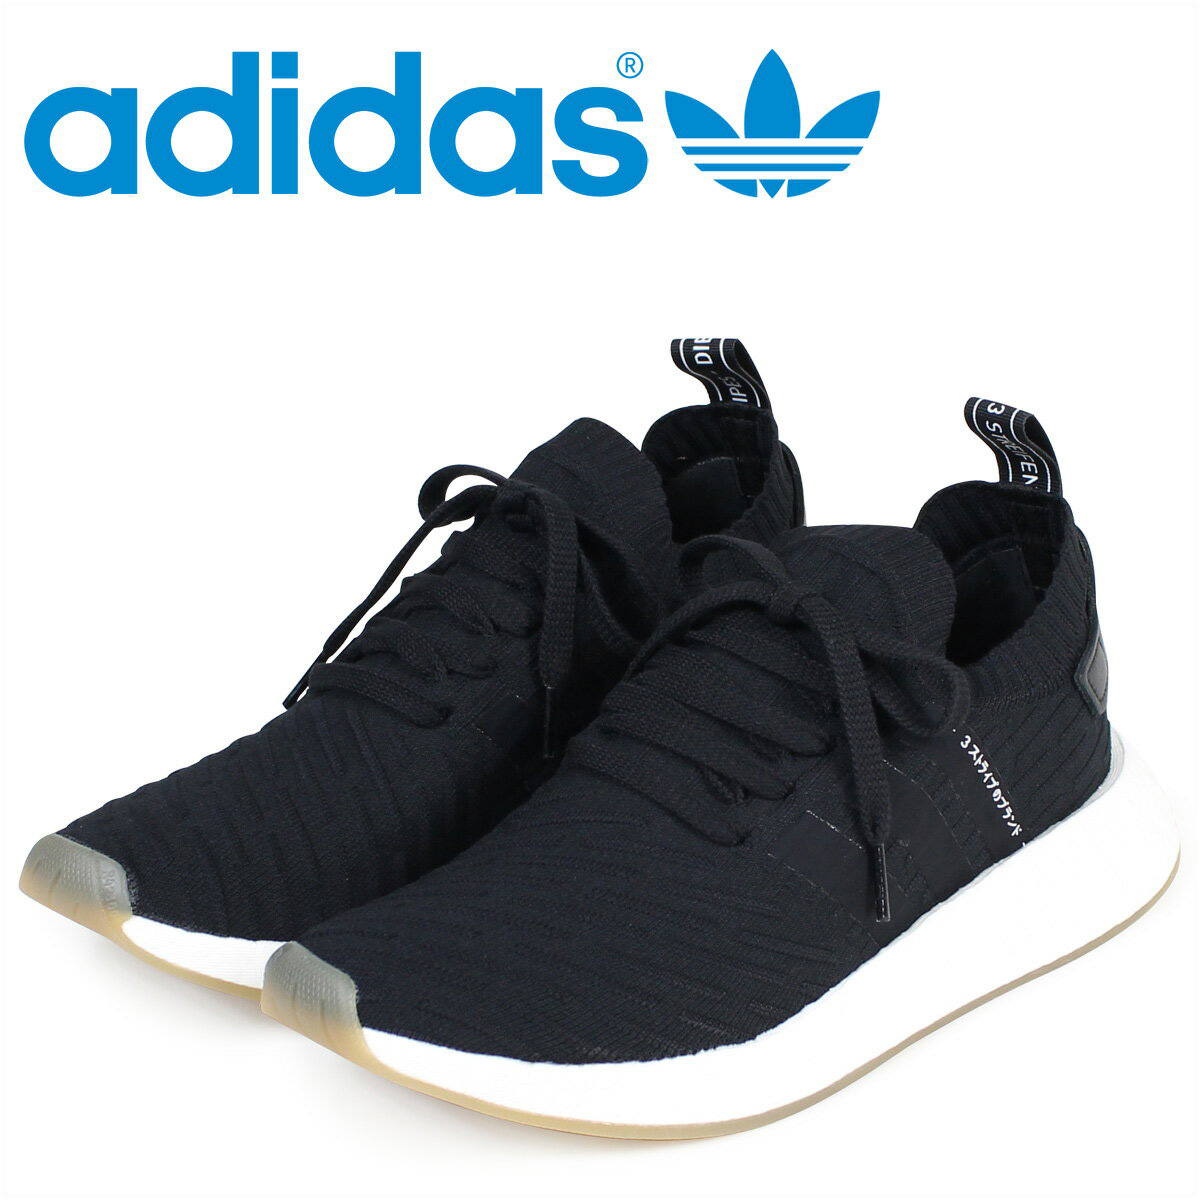 excellent quality save up to 80% quality adidas NMD R1 PK Adidas Originals sneakers nomad men BY9696 shoes black  black